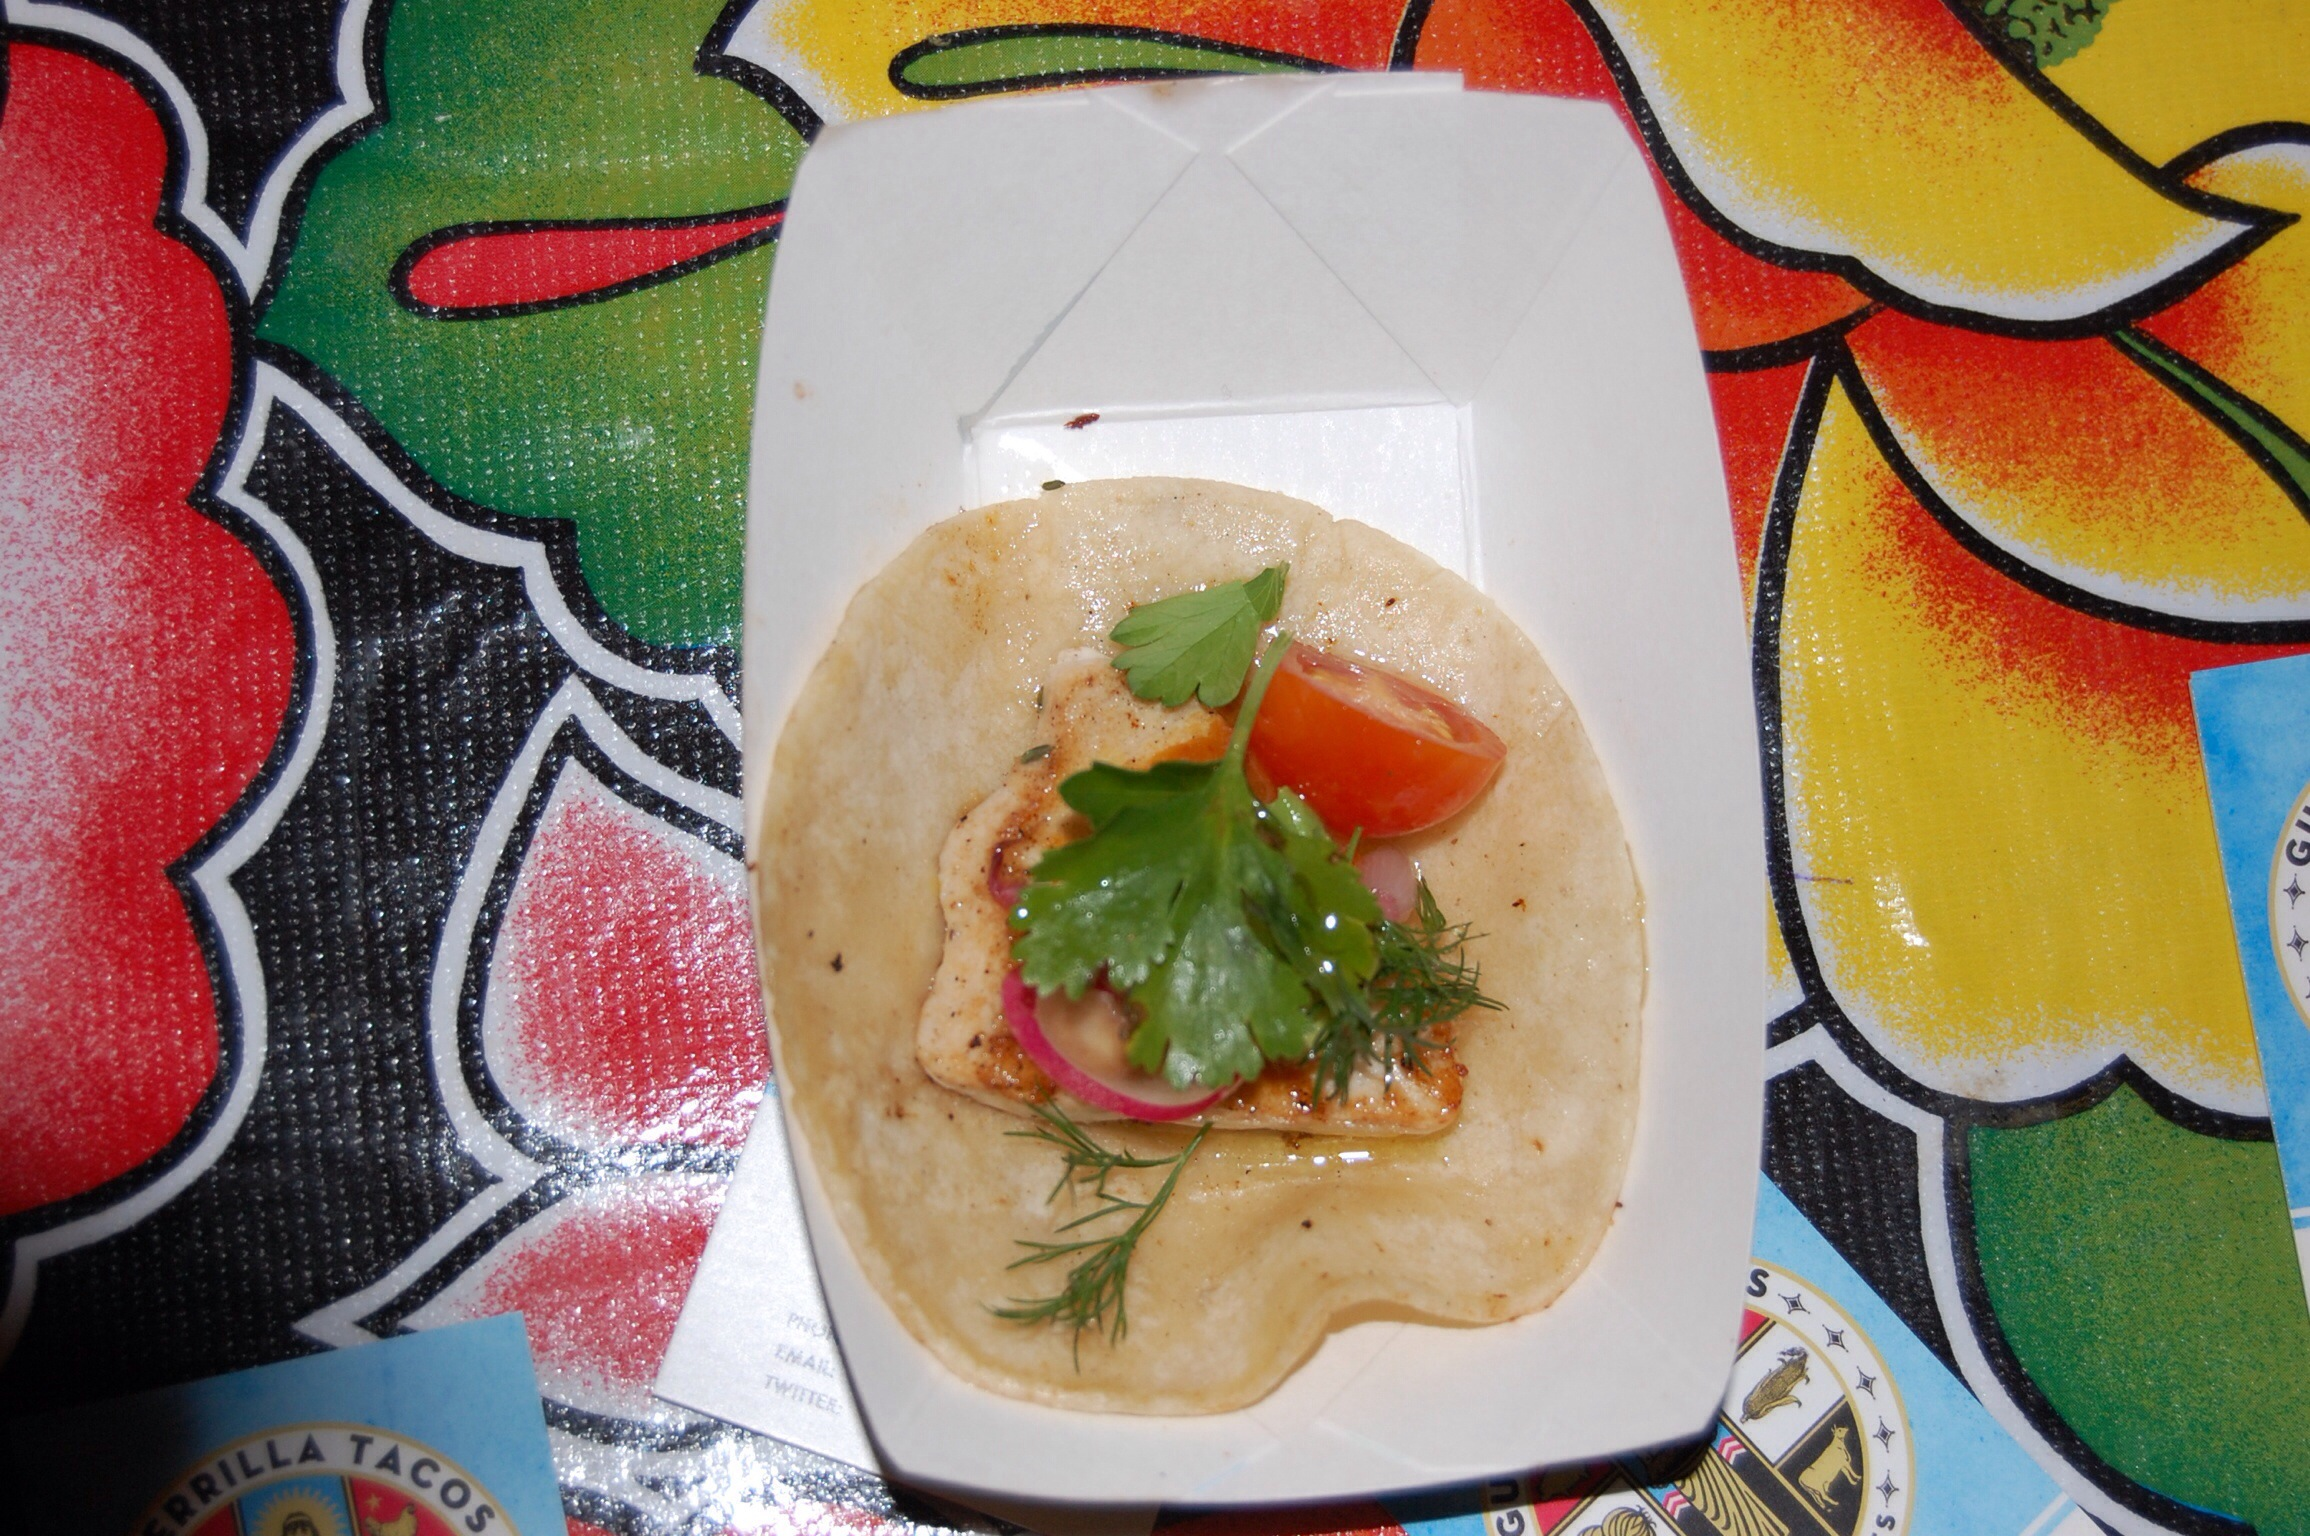 Swordfish Belly Tacos from Guerilla Tacos at The Taste of Mexico 2013